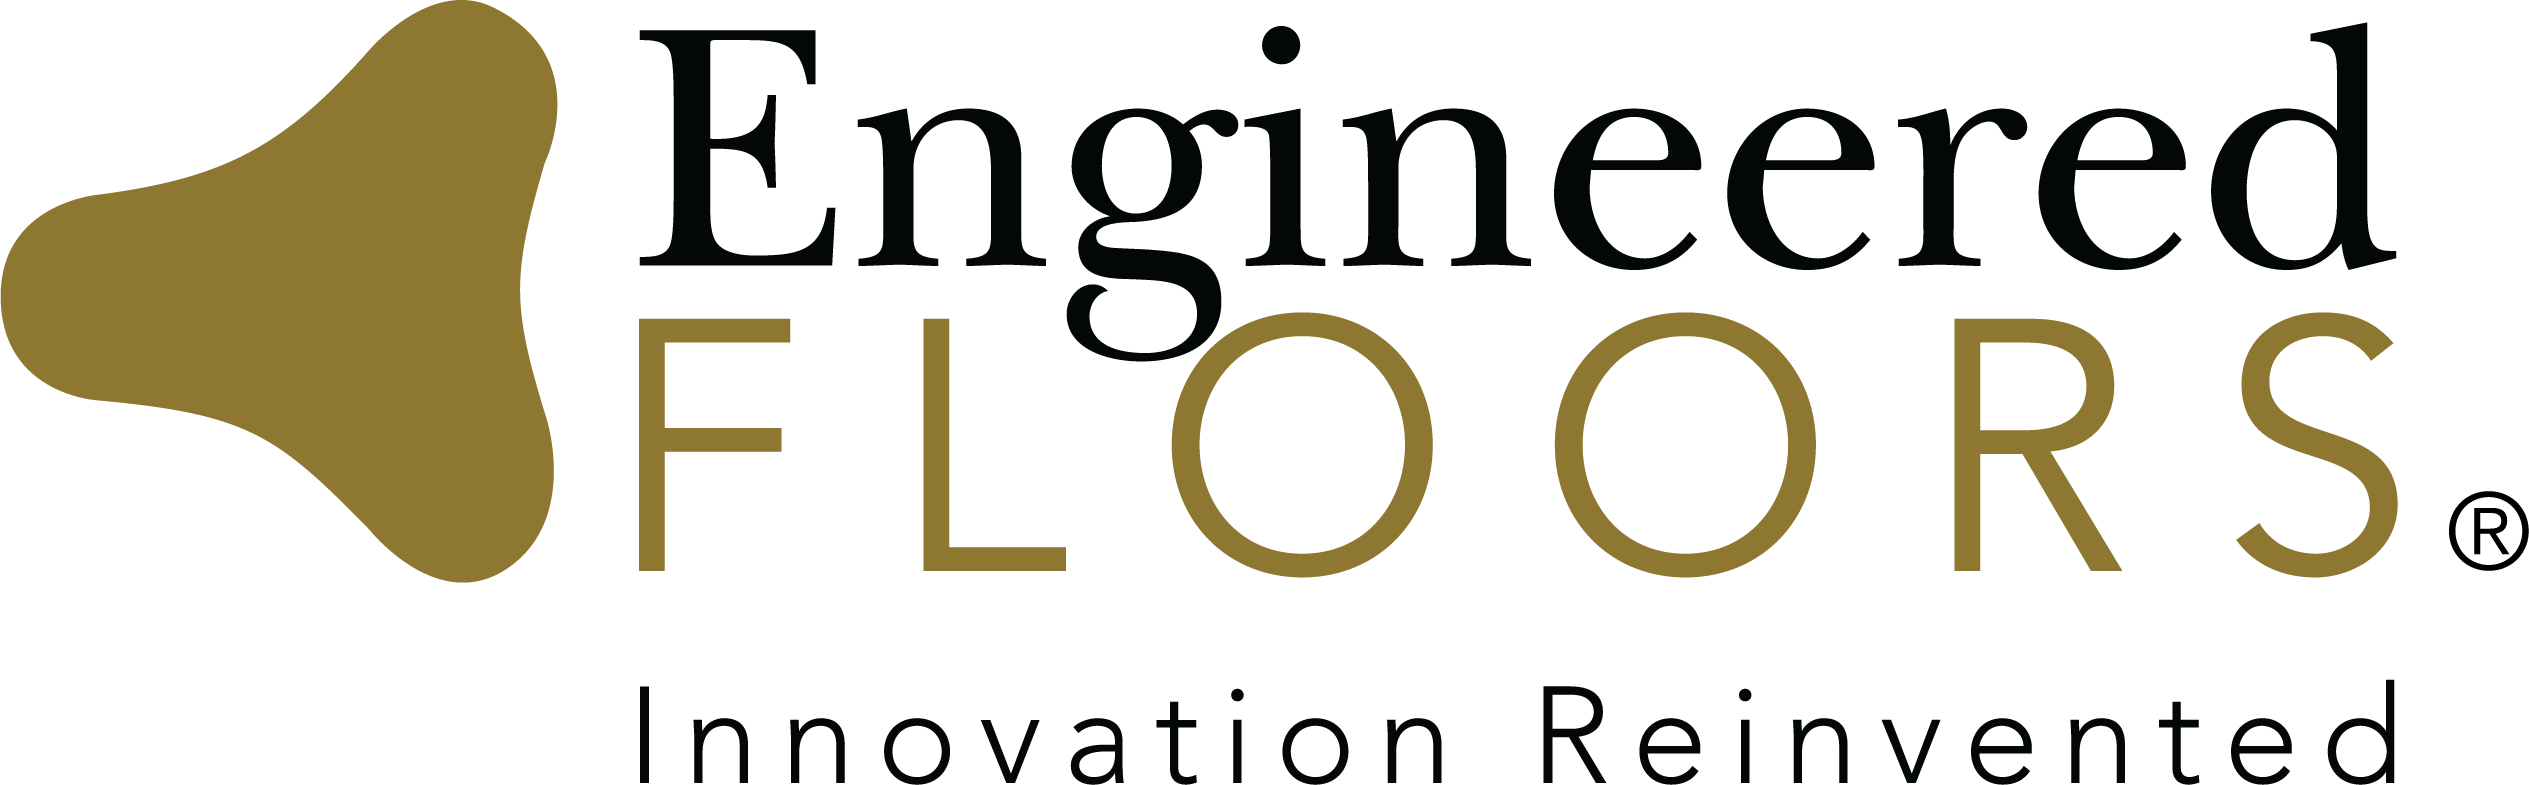 engineered floors logo